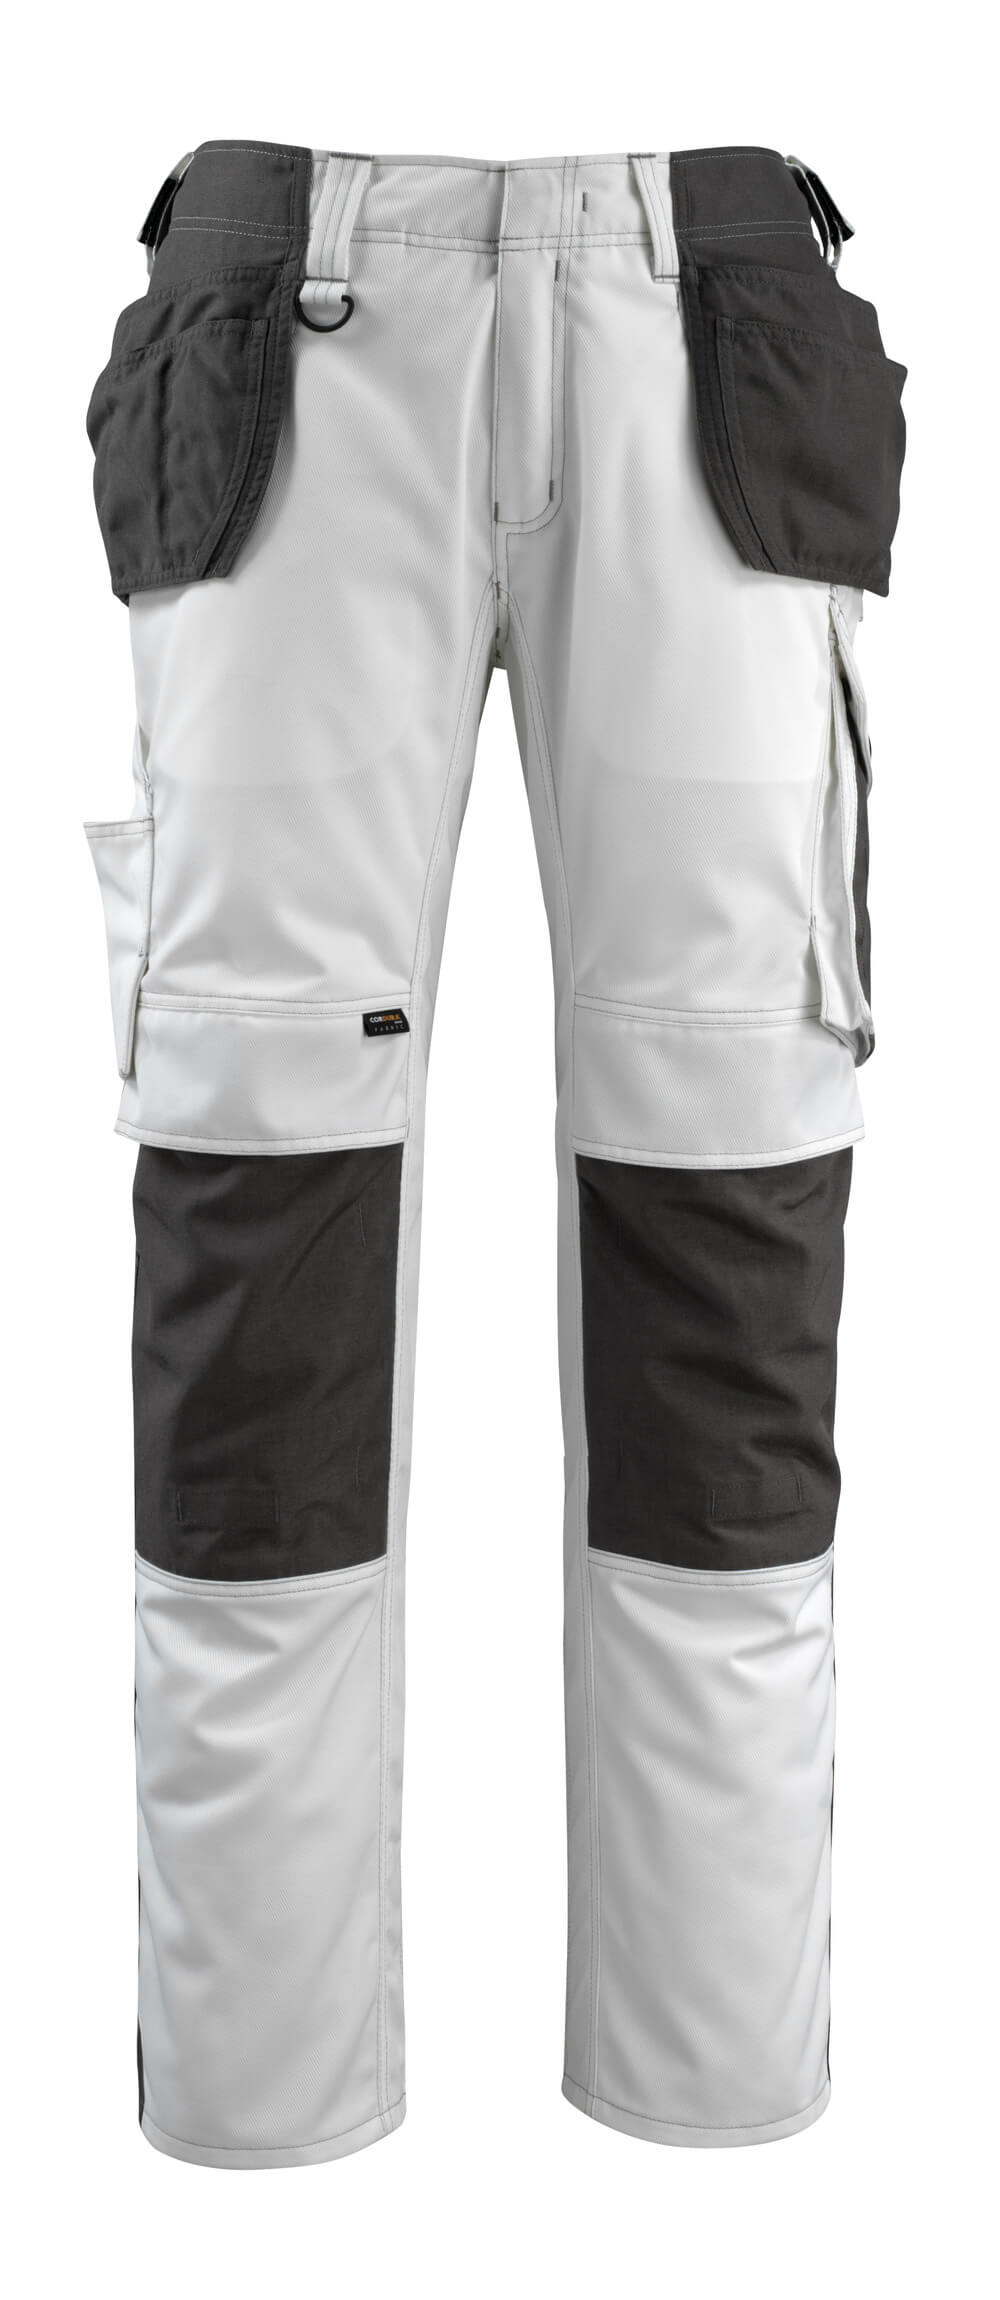 14031-203-0618 Pants with holster pockets - white/dark anthracite